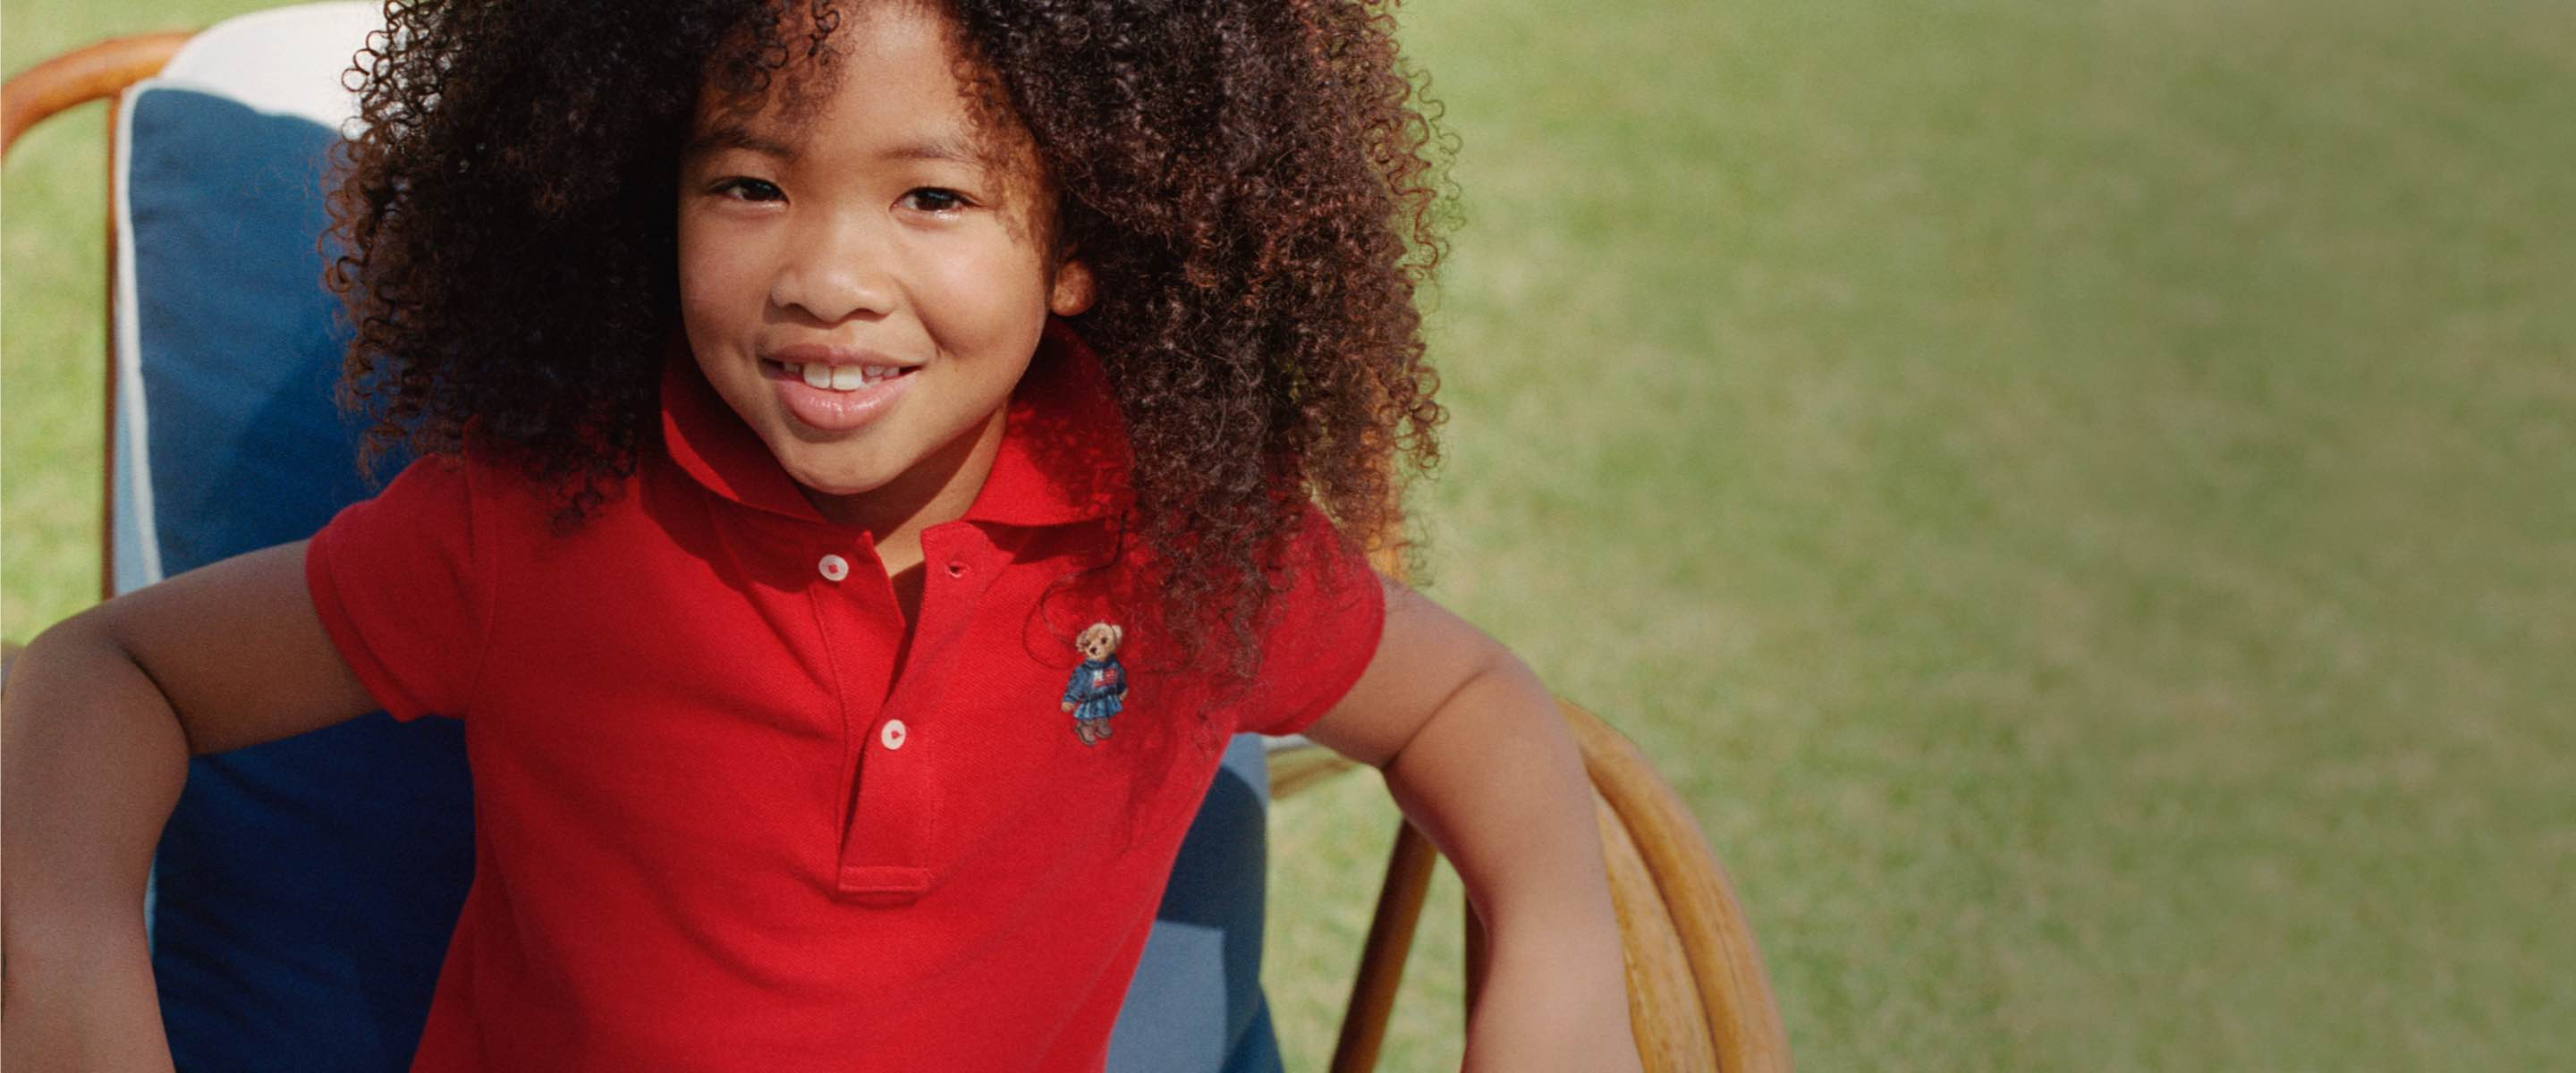 Kids in Polo shirts with different Polo Bear embroidery